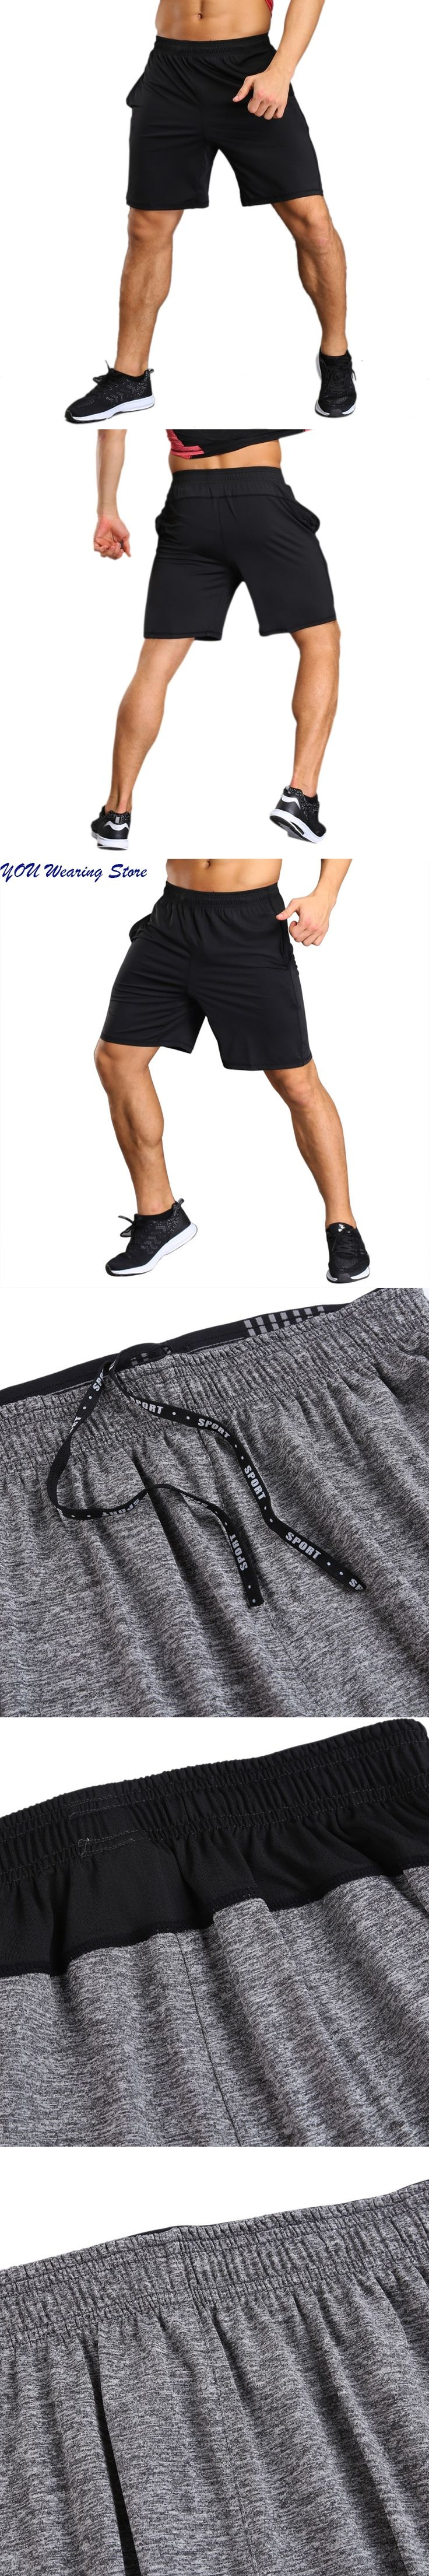 Men Shorts Men Bodybuilding Male Shorts Workout Shorts Male Fitness Solid mens Elastic Waist shorts Casual M-XXL New